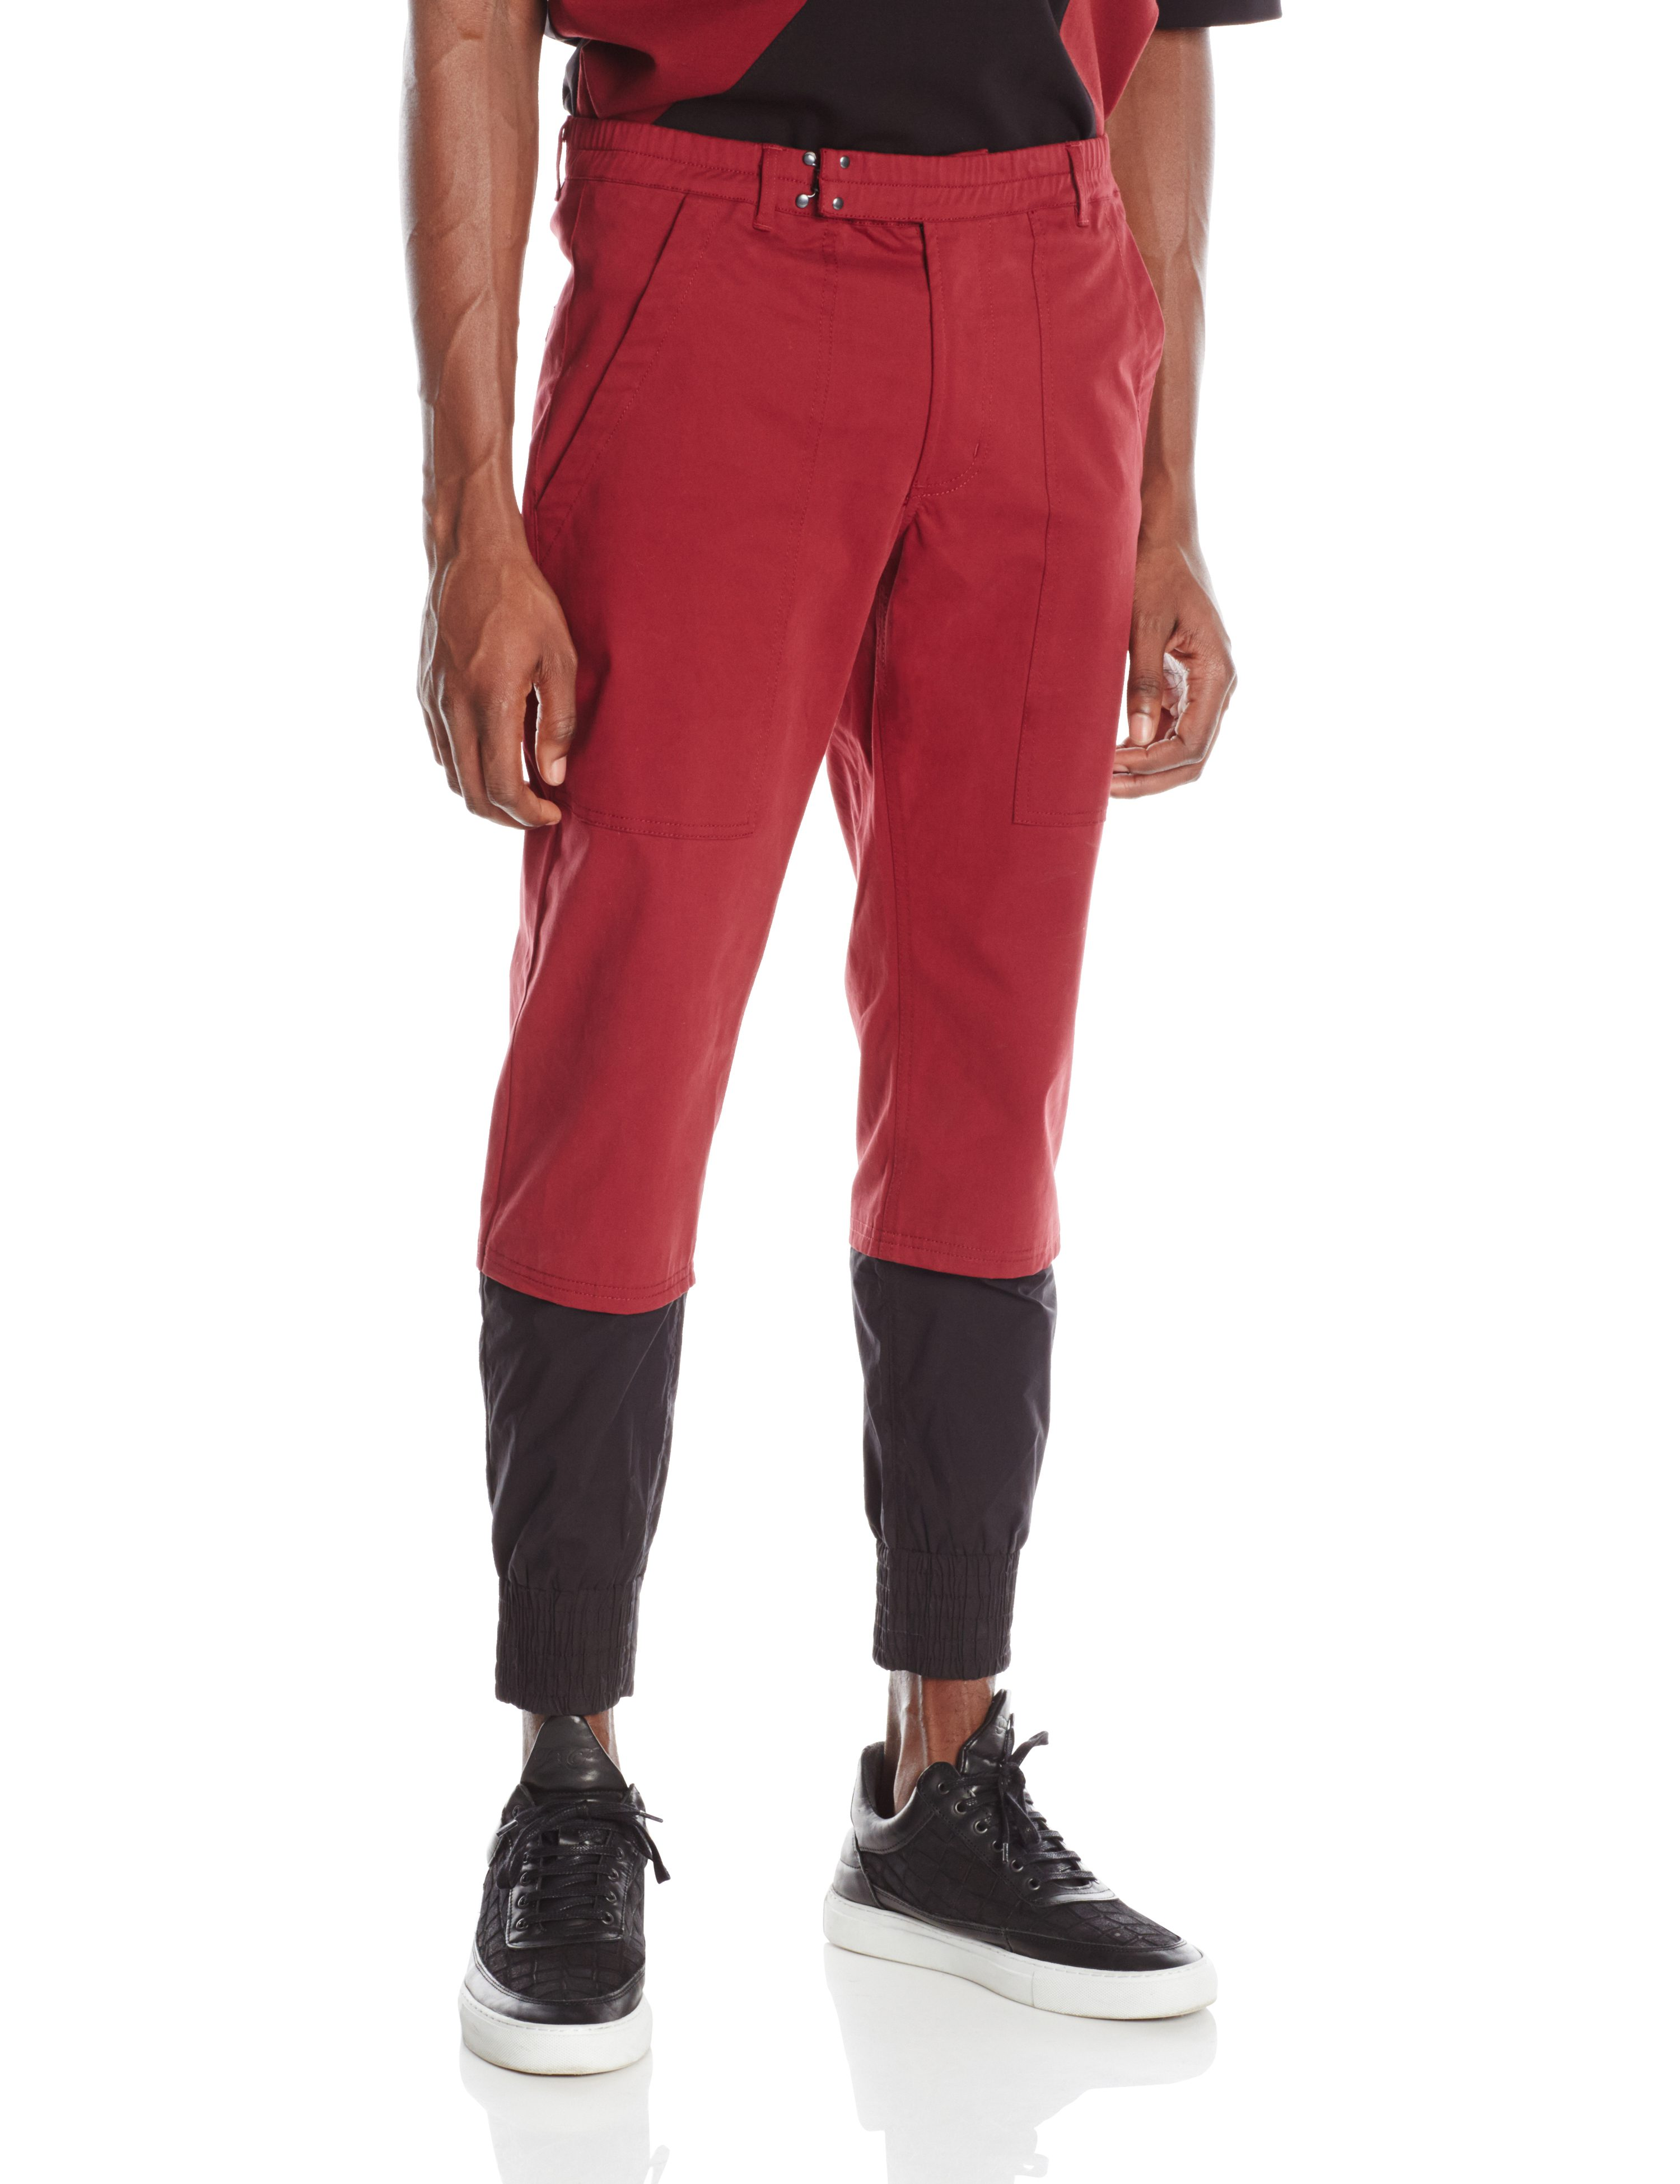 FRONT-GLITCH PANT BURGANDY.0283